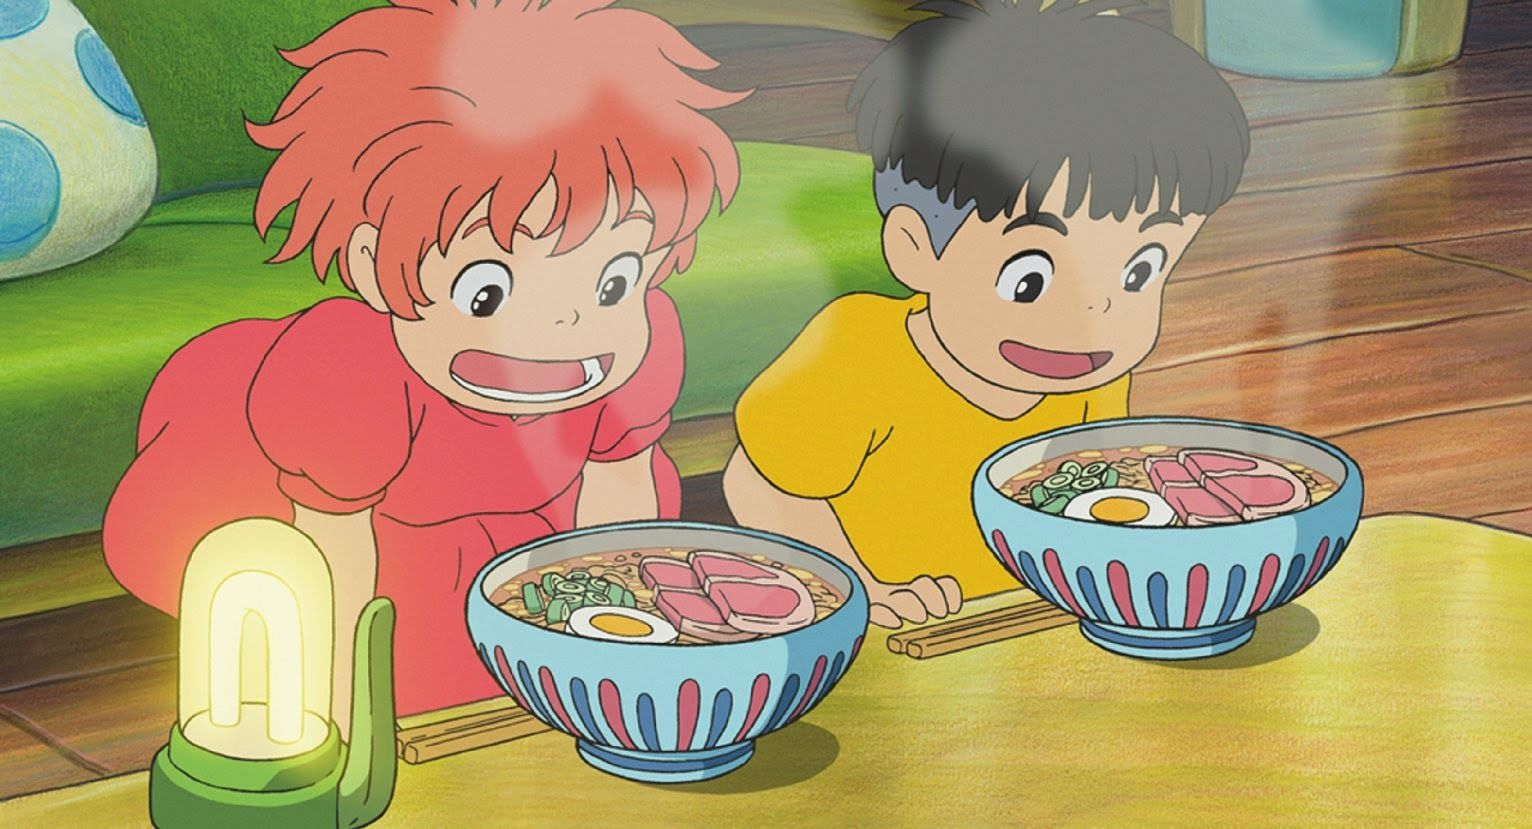 studio-ghibli-ponyo-is-terrifyingly-good-and-difficult-to-not-love-it-instant-ramen-wit-366451